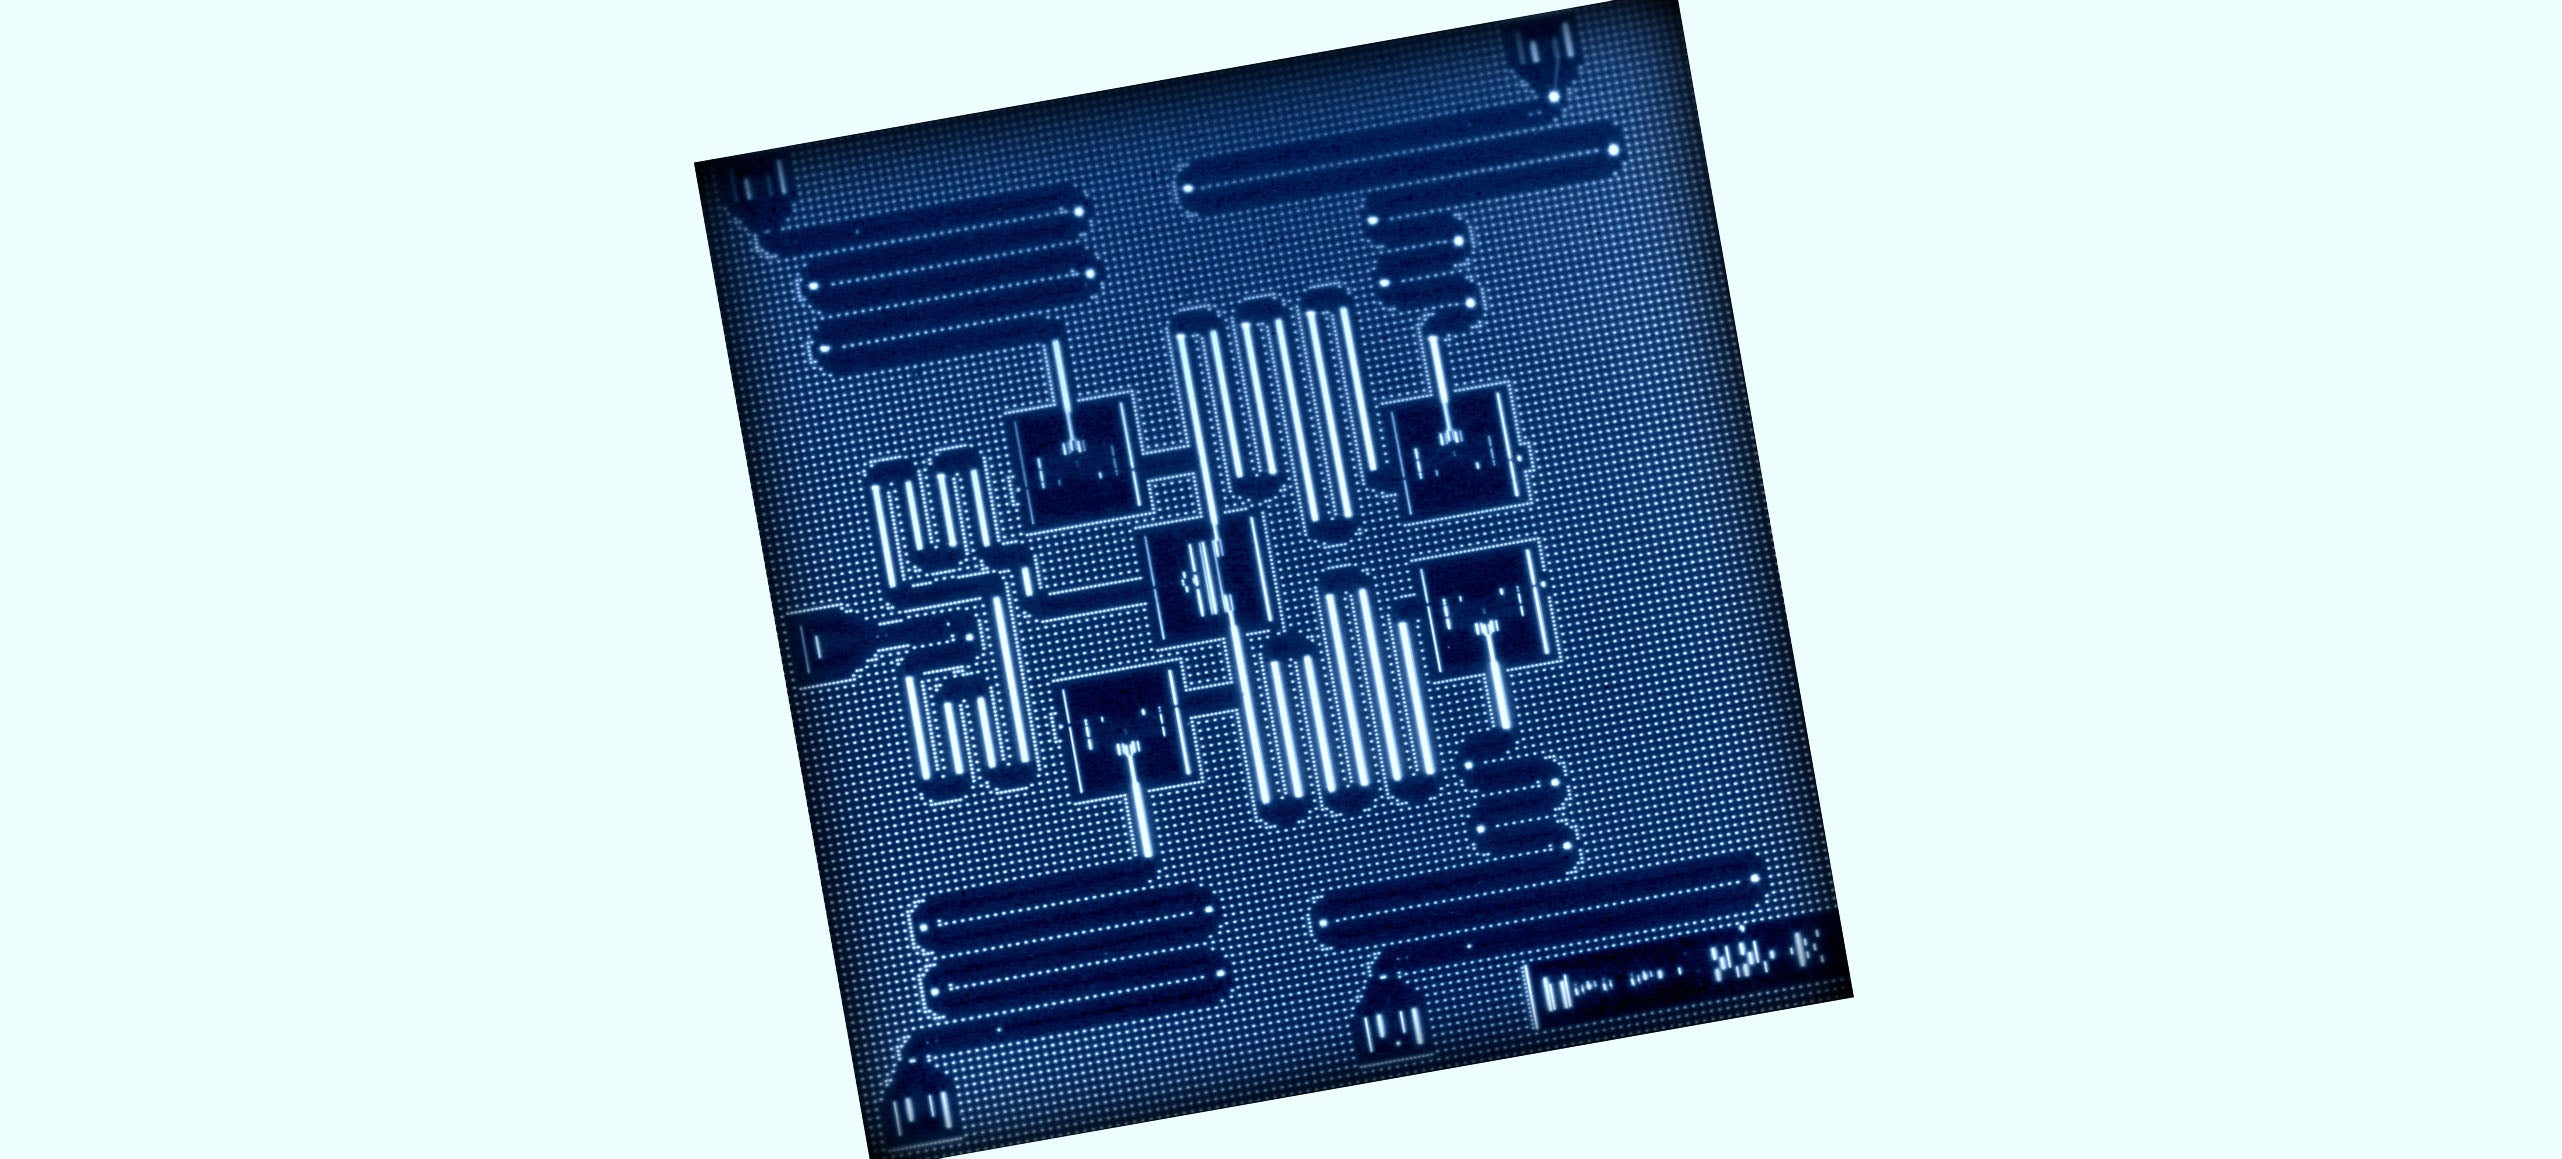 There's Now a Real Quantum Computer That Anyone Can Use